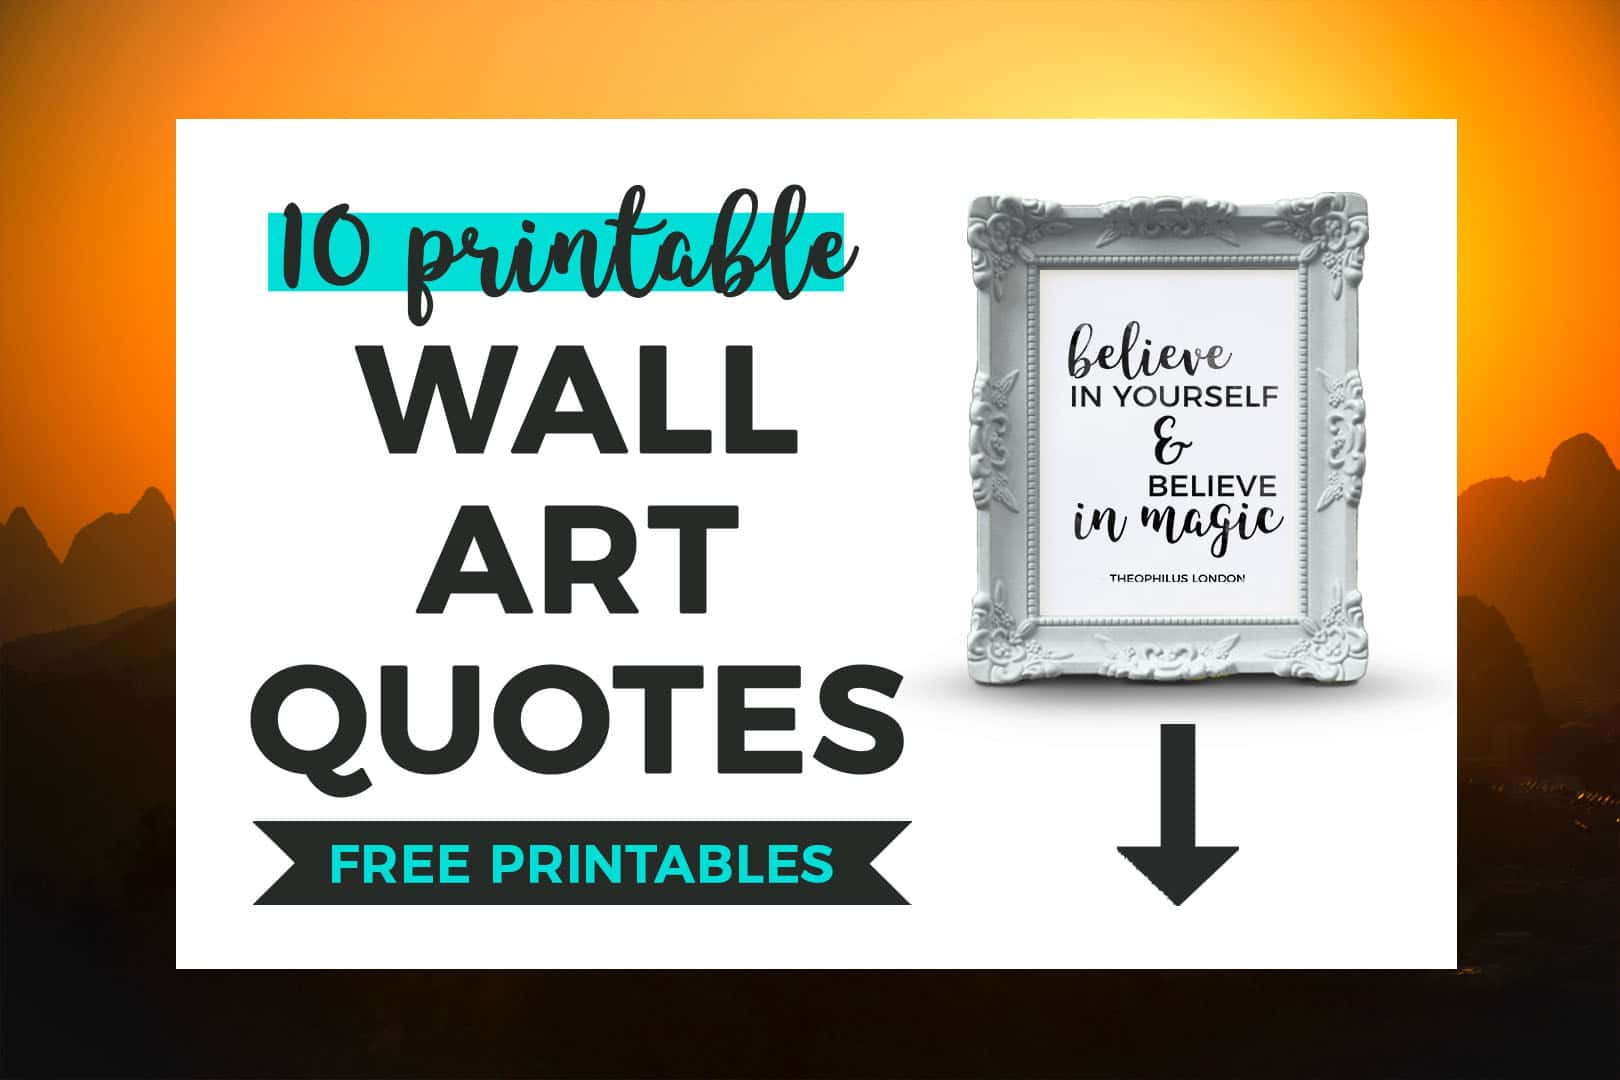 10 Printable Wall Art Quotes FREE PRINTABLES + Quote in Frame